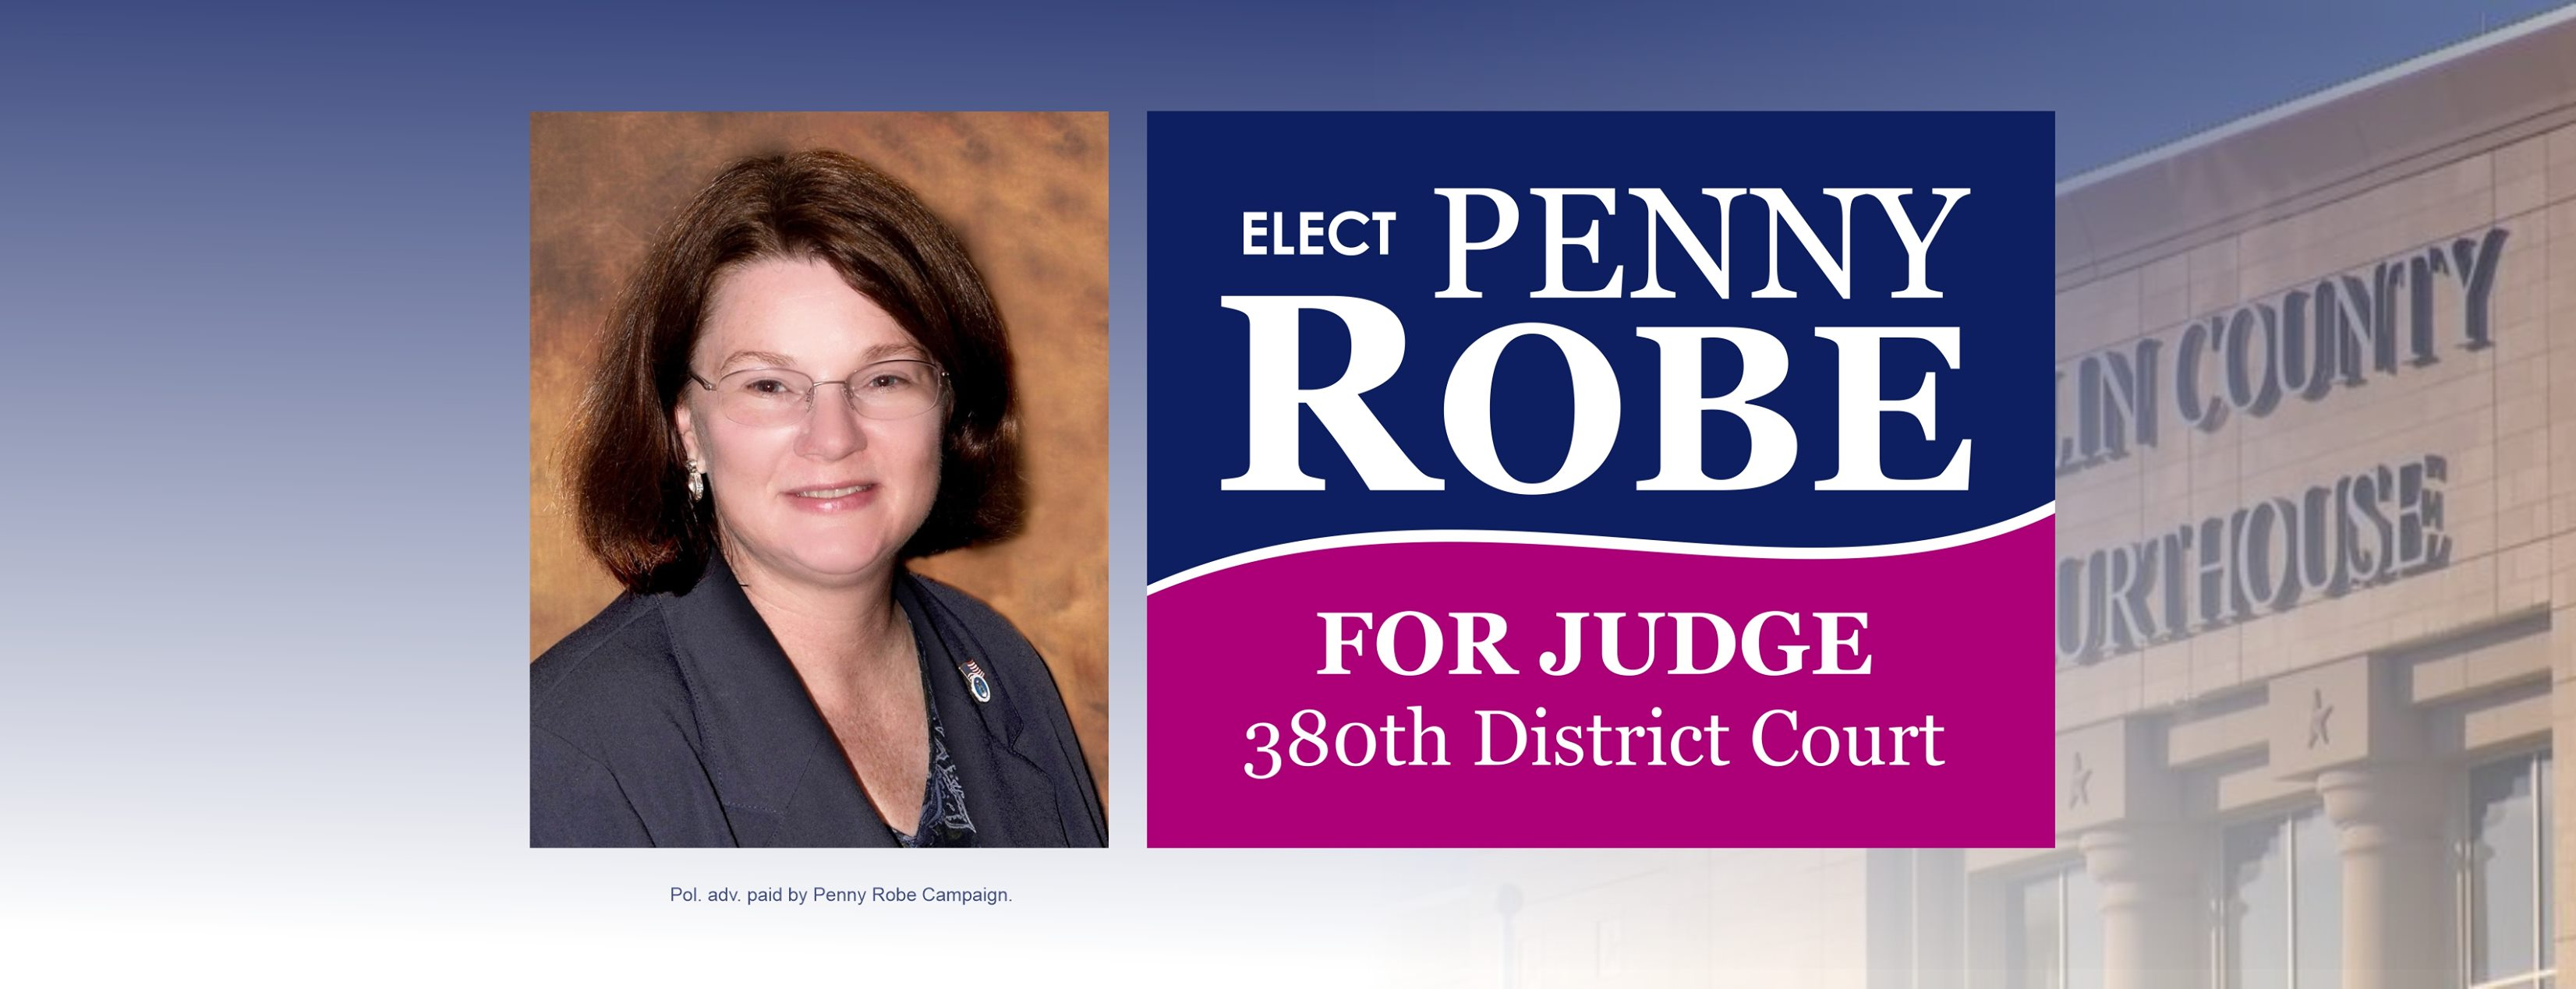 Penny Robe for Judge